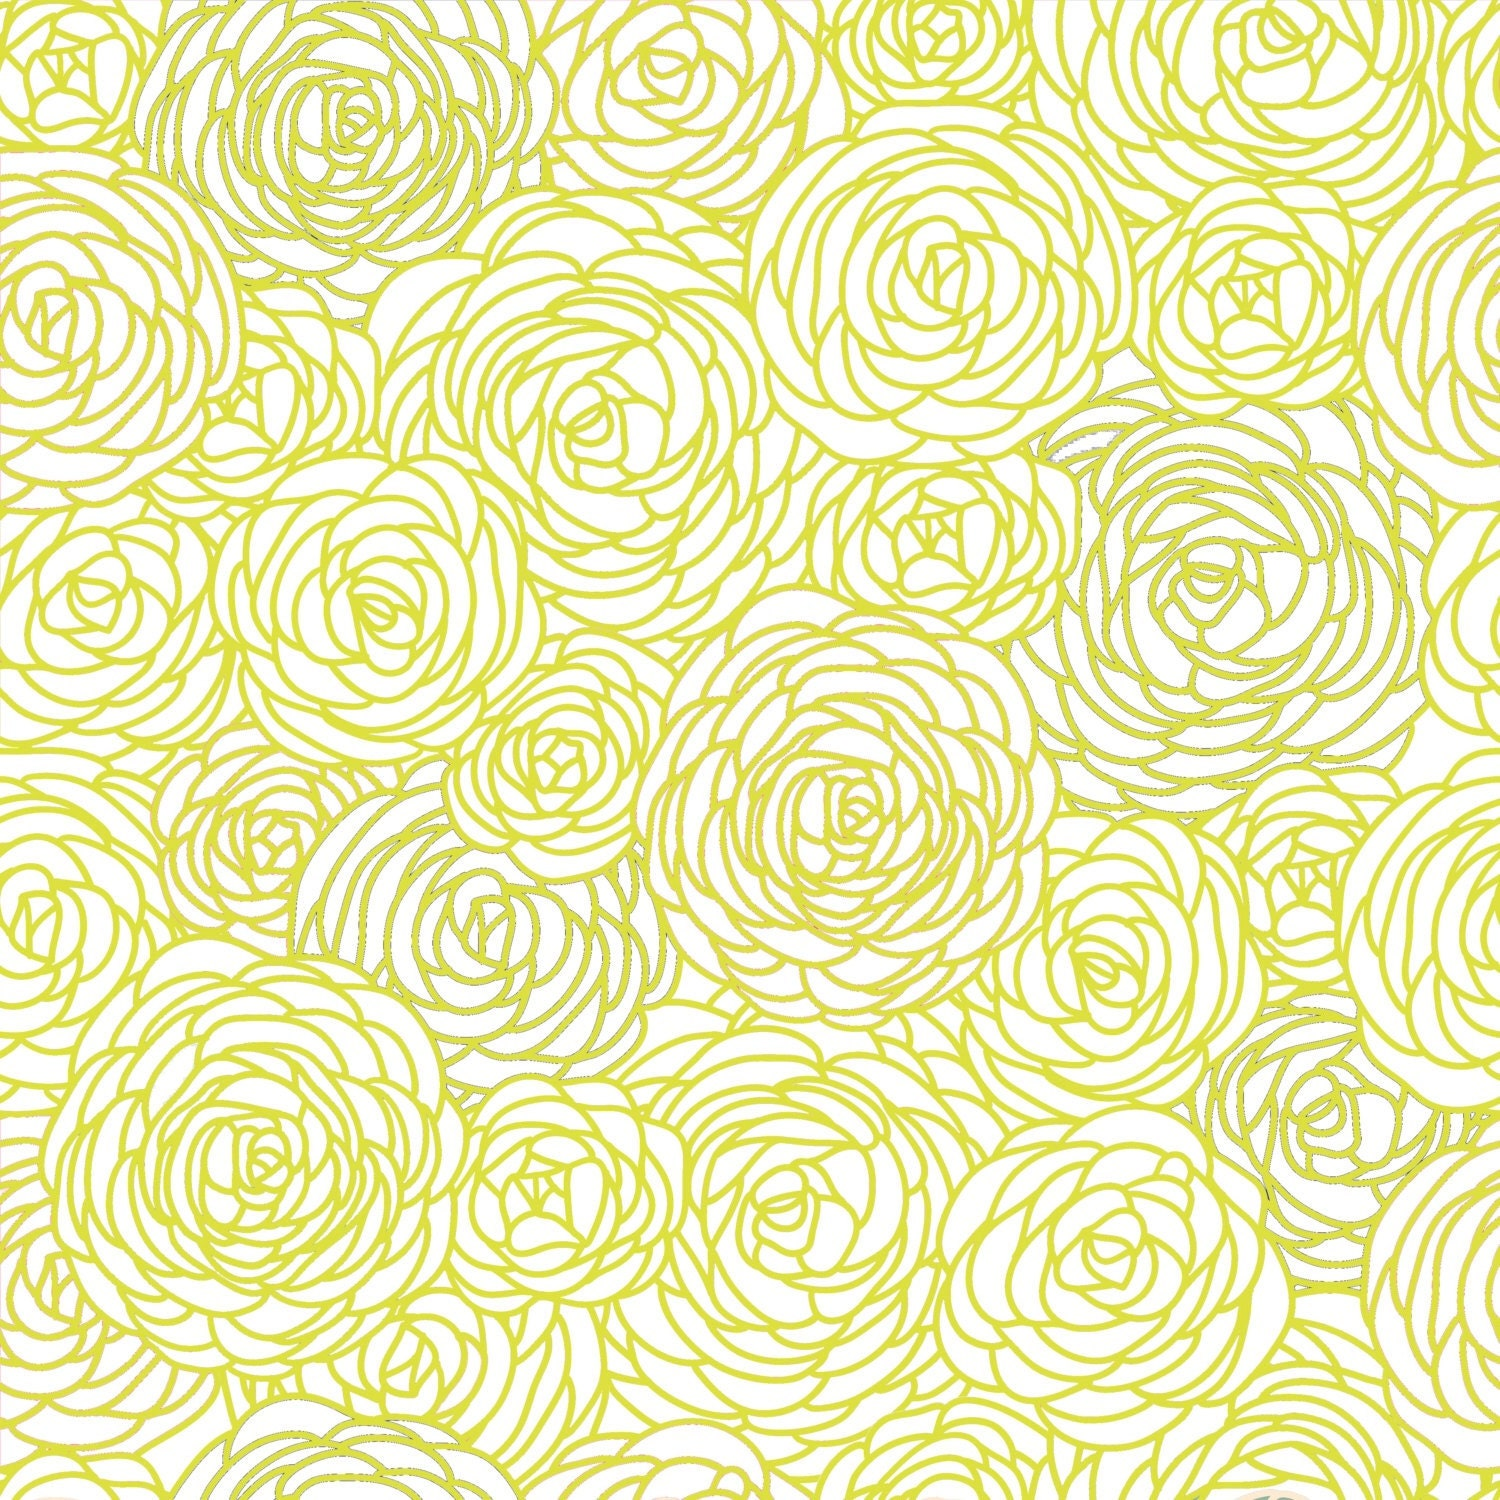 Removable Wallpaper Blossom Print Citron By GailWrightatHome